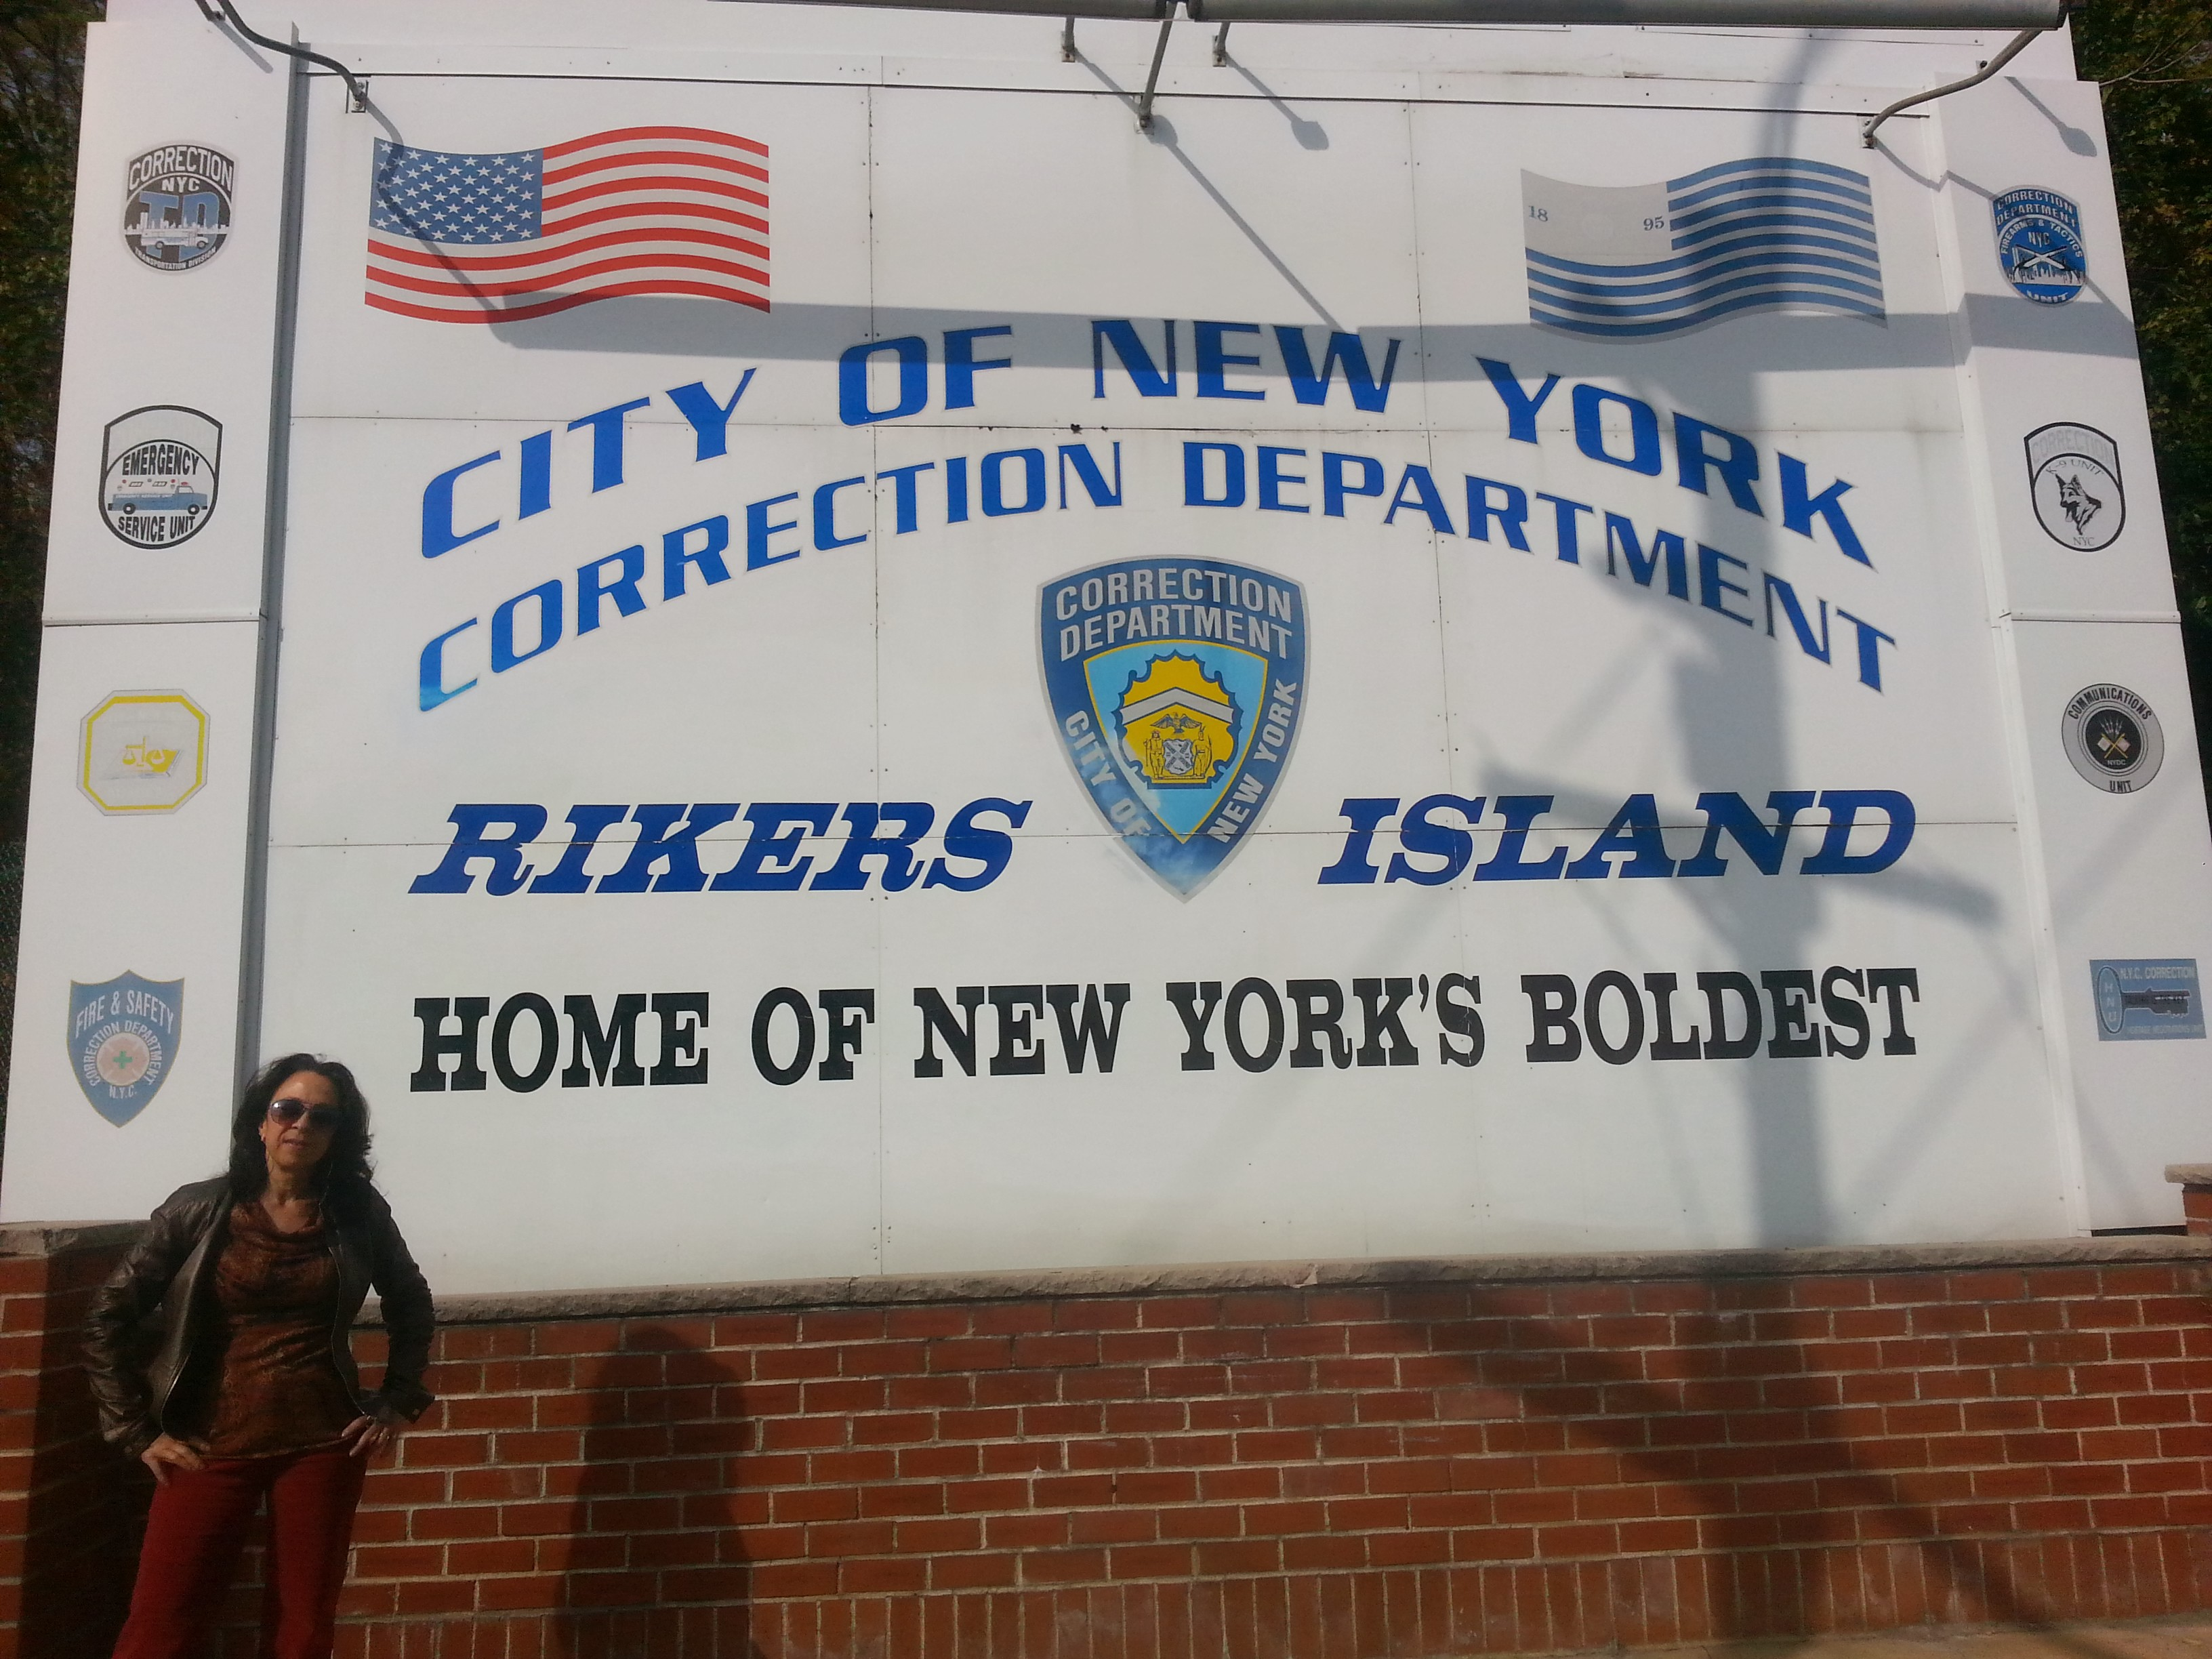 Going to Rikers Island